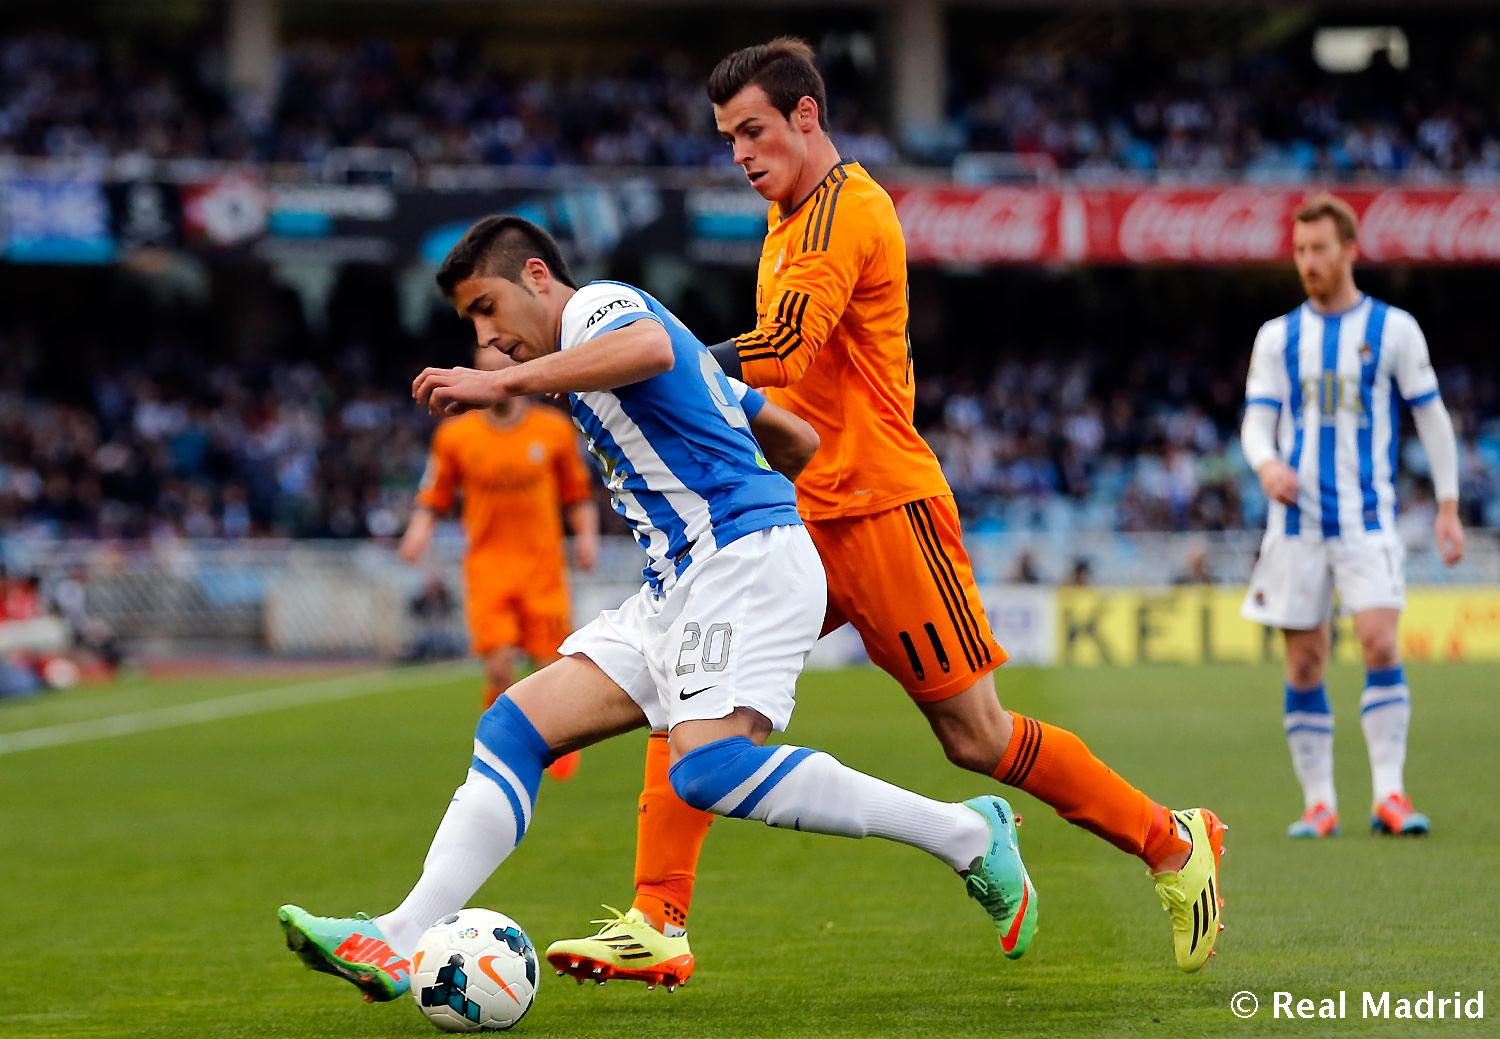 Real Madrid - Real Sociedad - Real Madrid - 05-04-2014